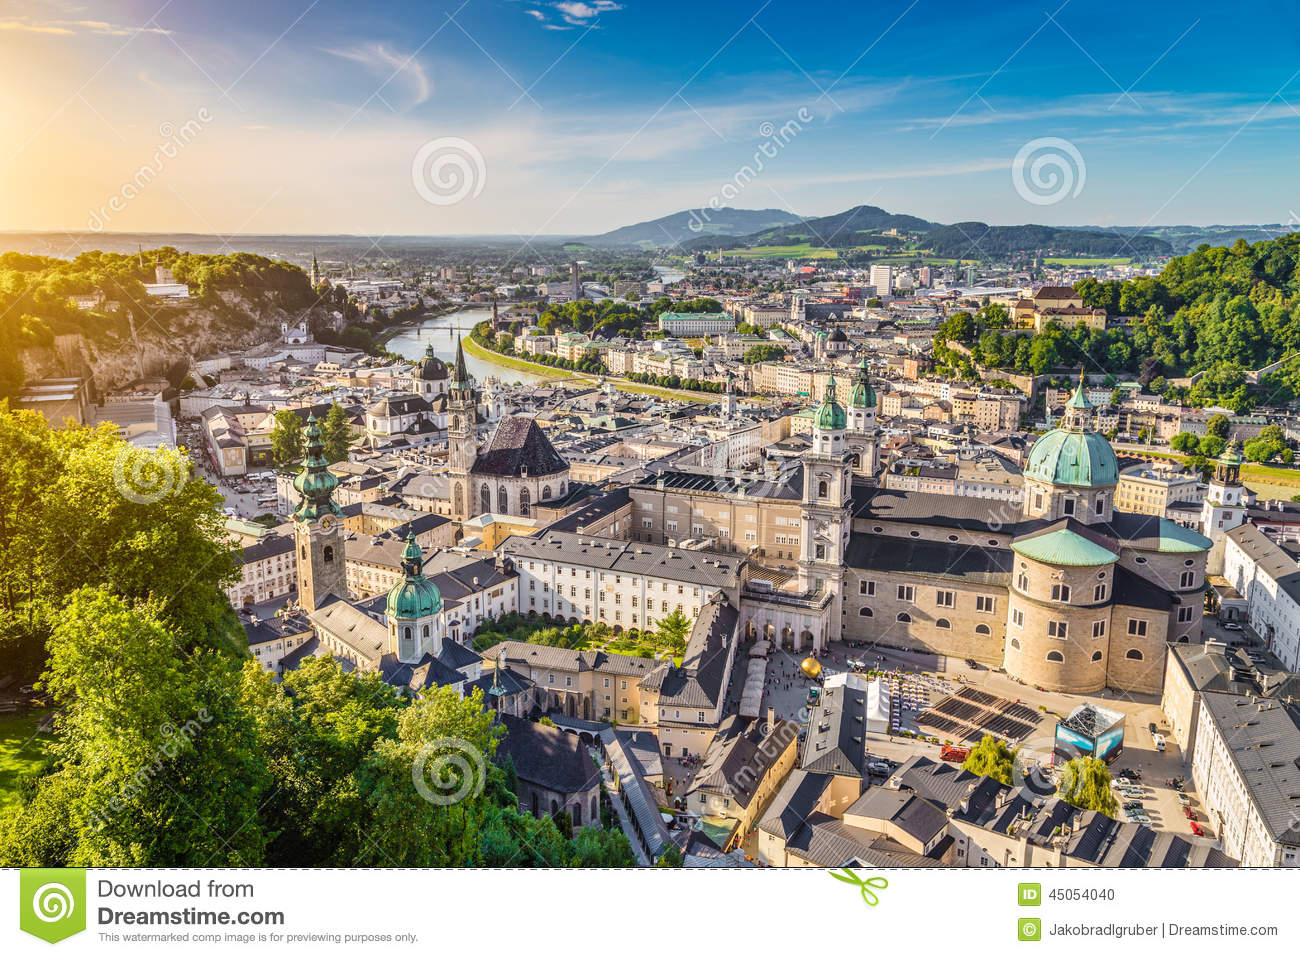 Aerial View Of The Historic City Of Salzburg, Austria Stock Photo.